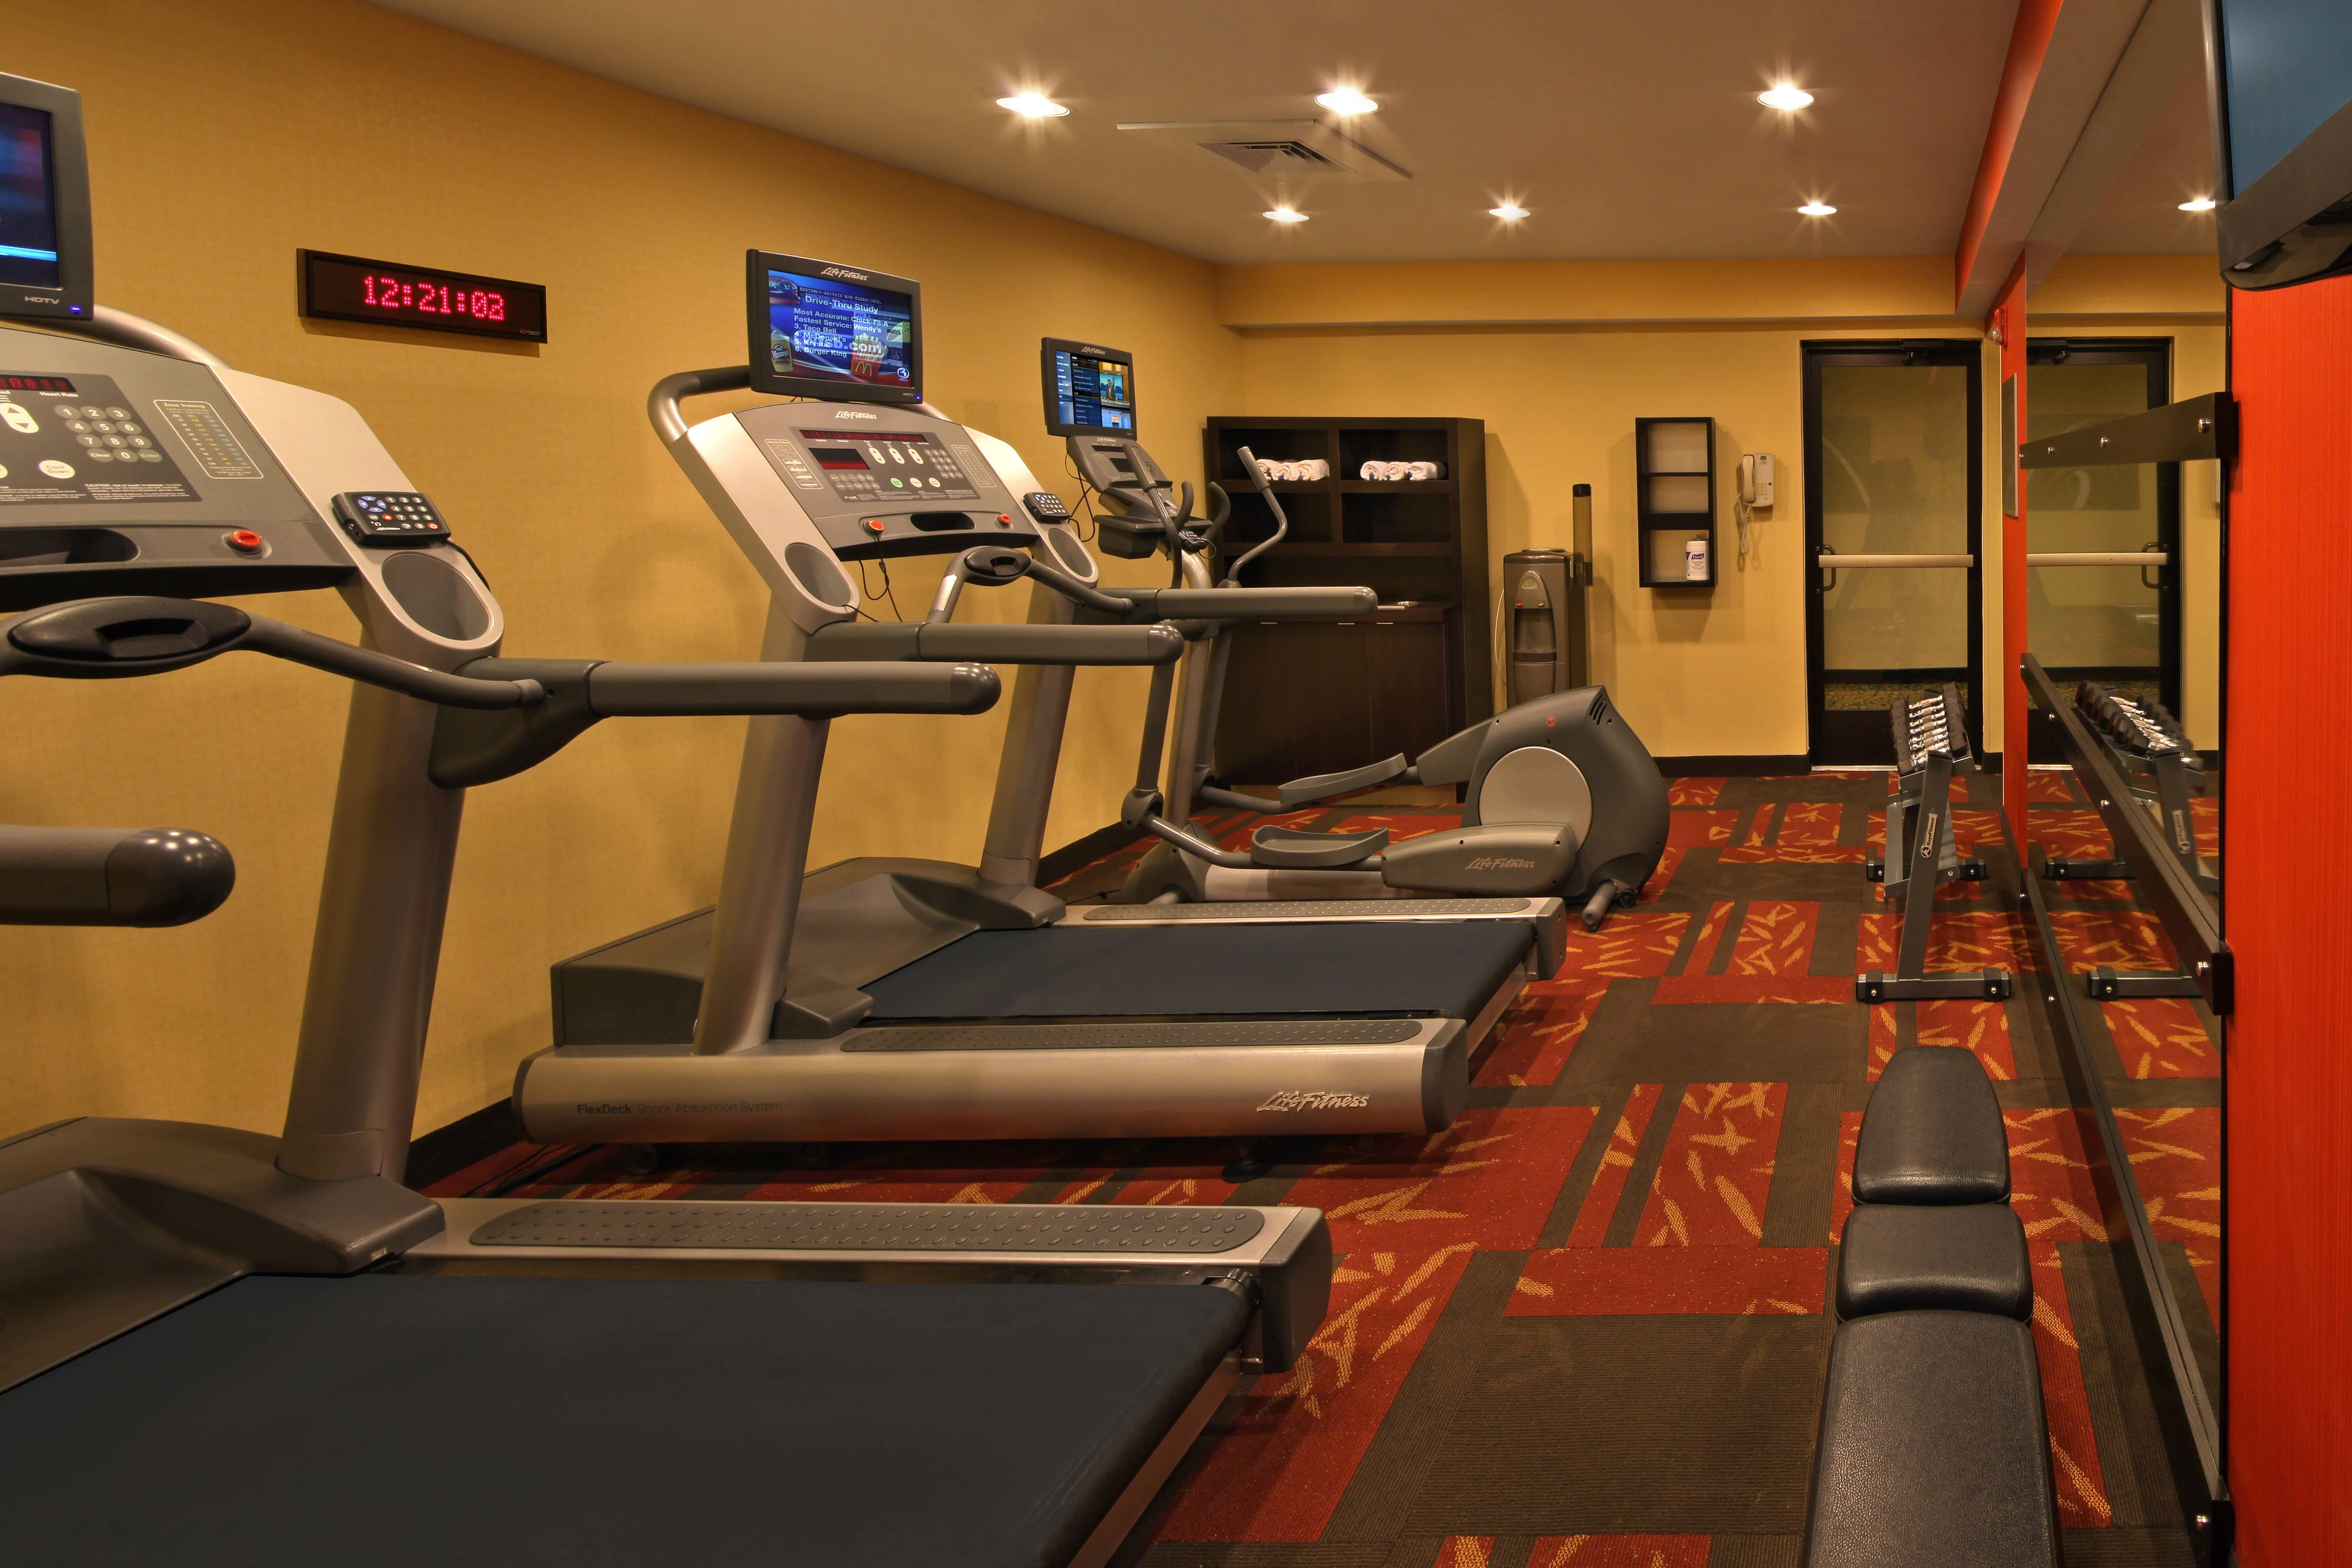 Hotel with gym in Hartford, CT